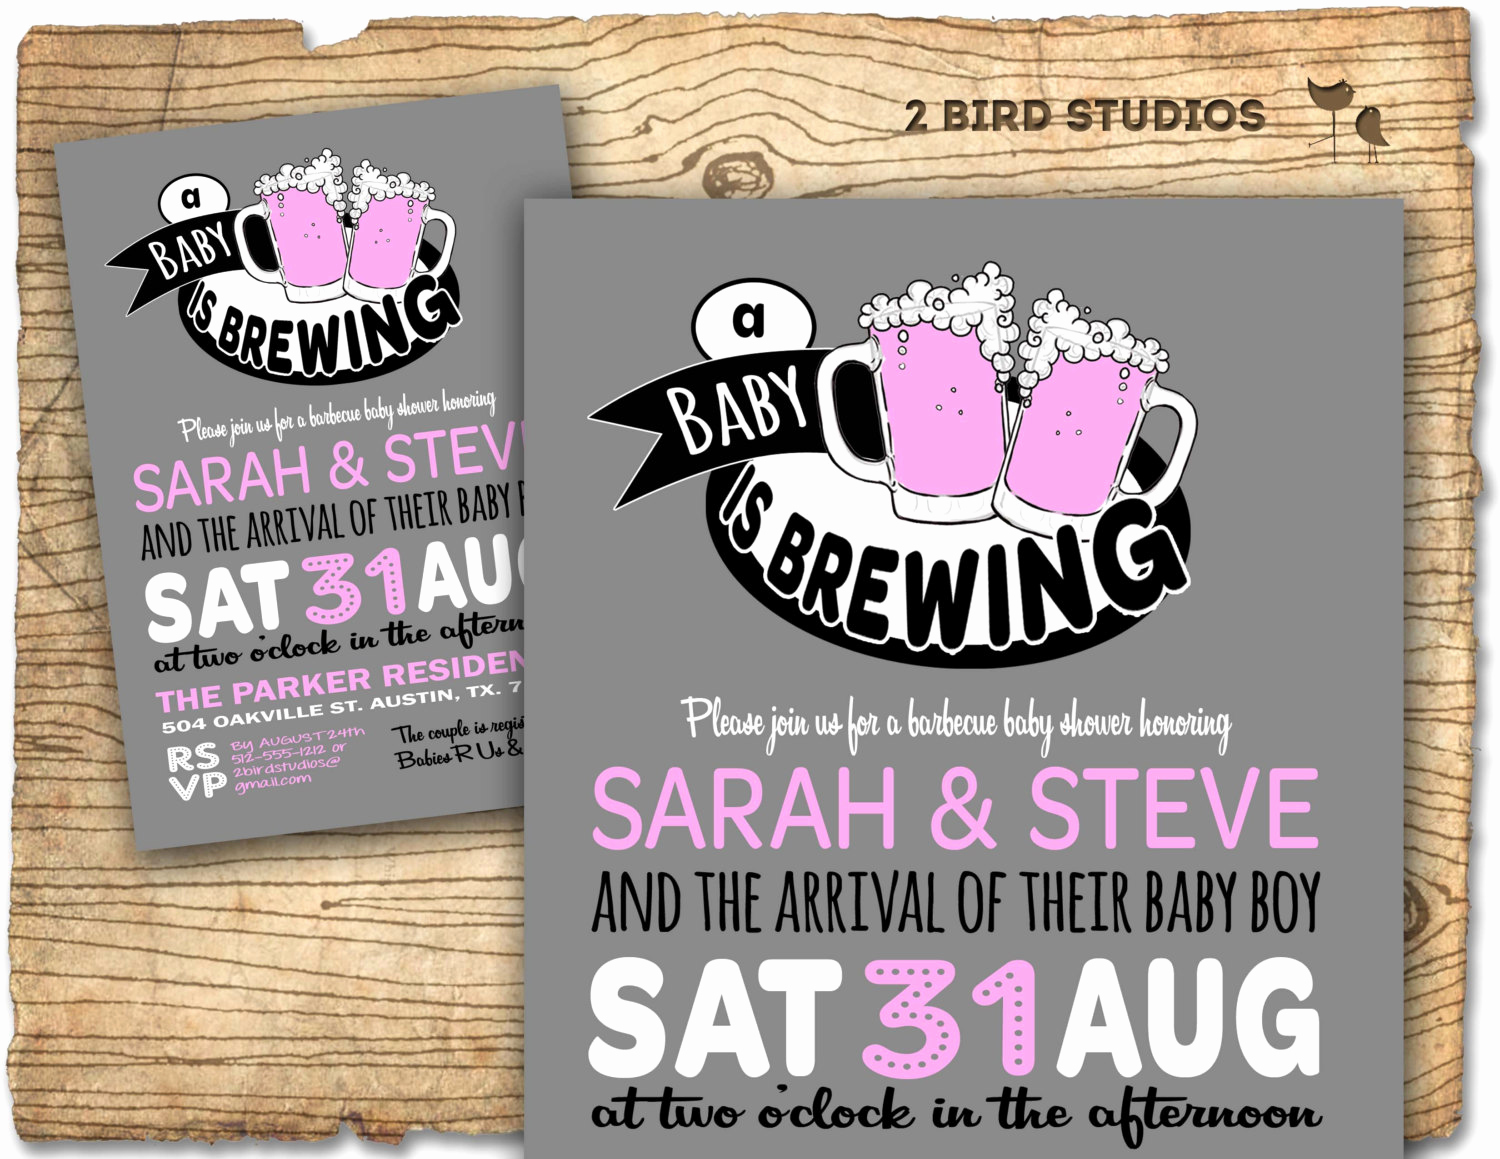 Coed Baby Shower Invitation Ideas Best Of Baby Q Beer Baby Shower Invitation Baby Q Baby Shower